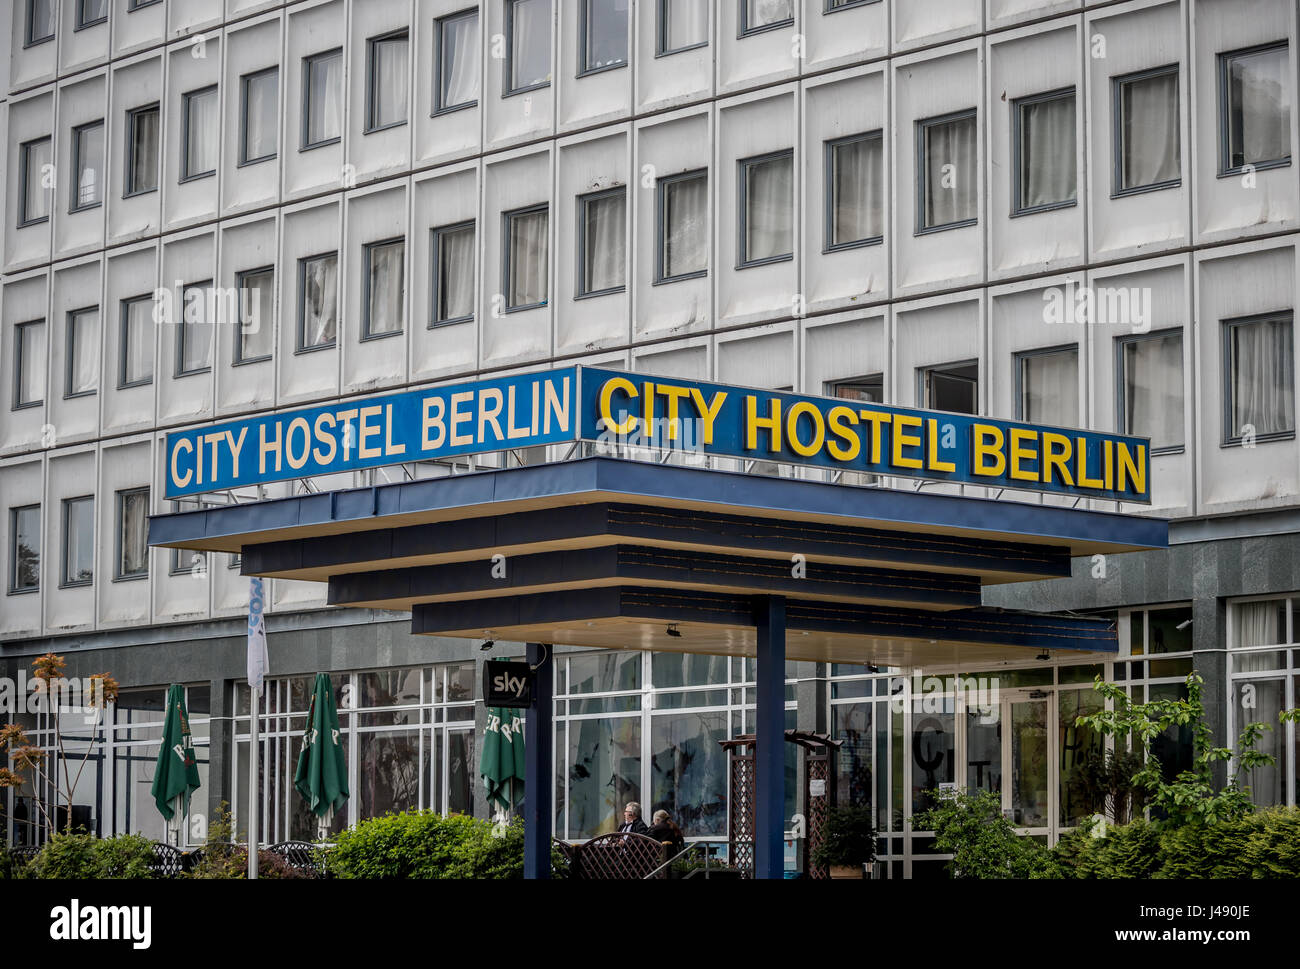 Berlin Germany 10th May 2017 View Of The City Hostel